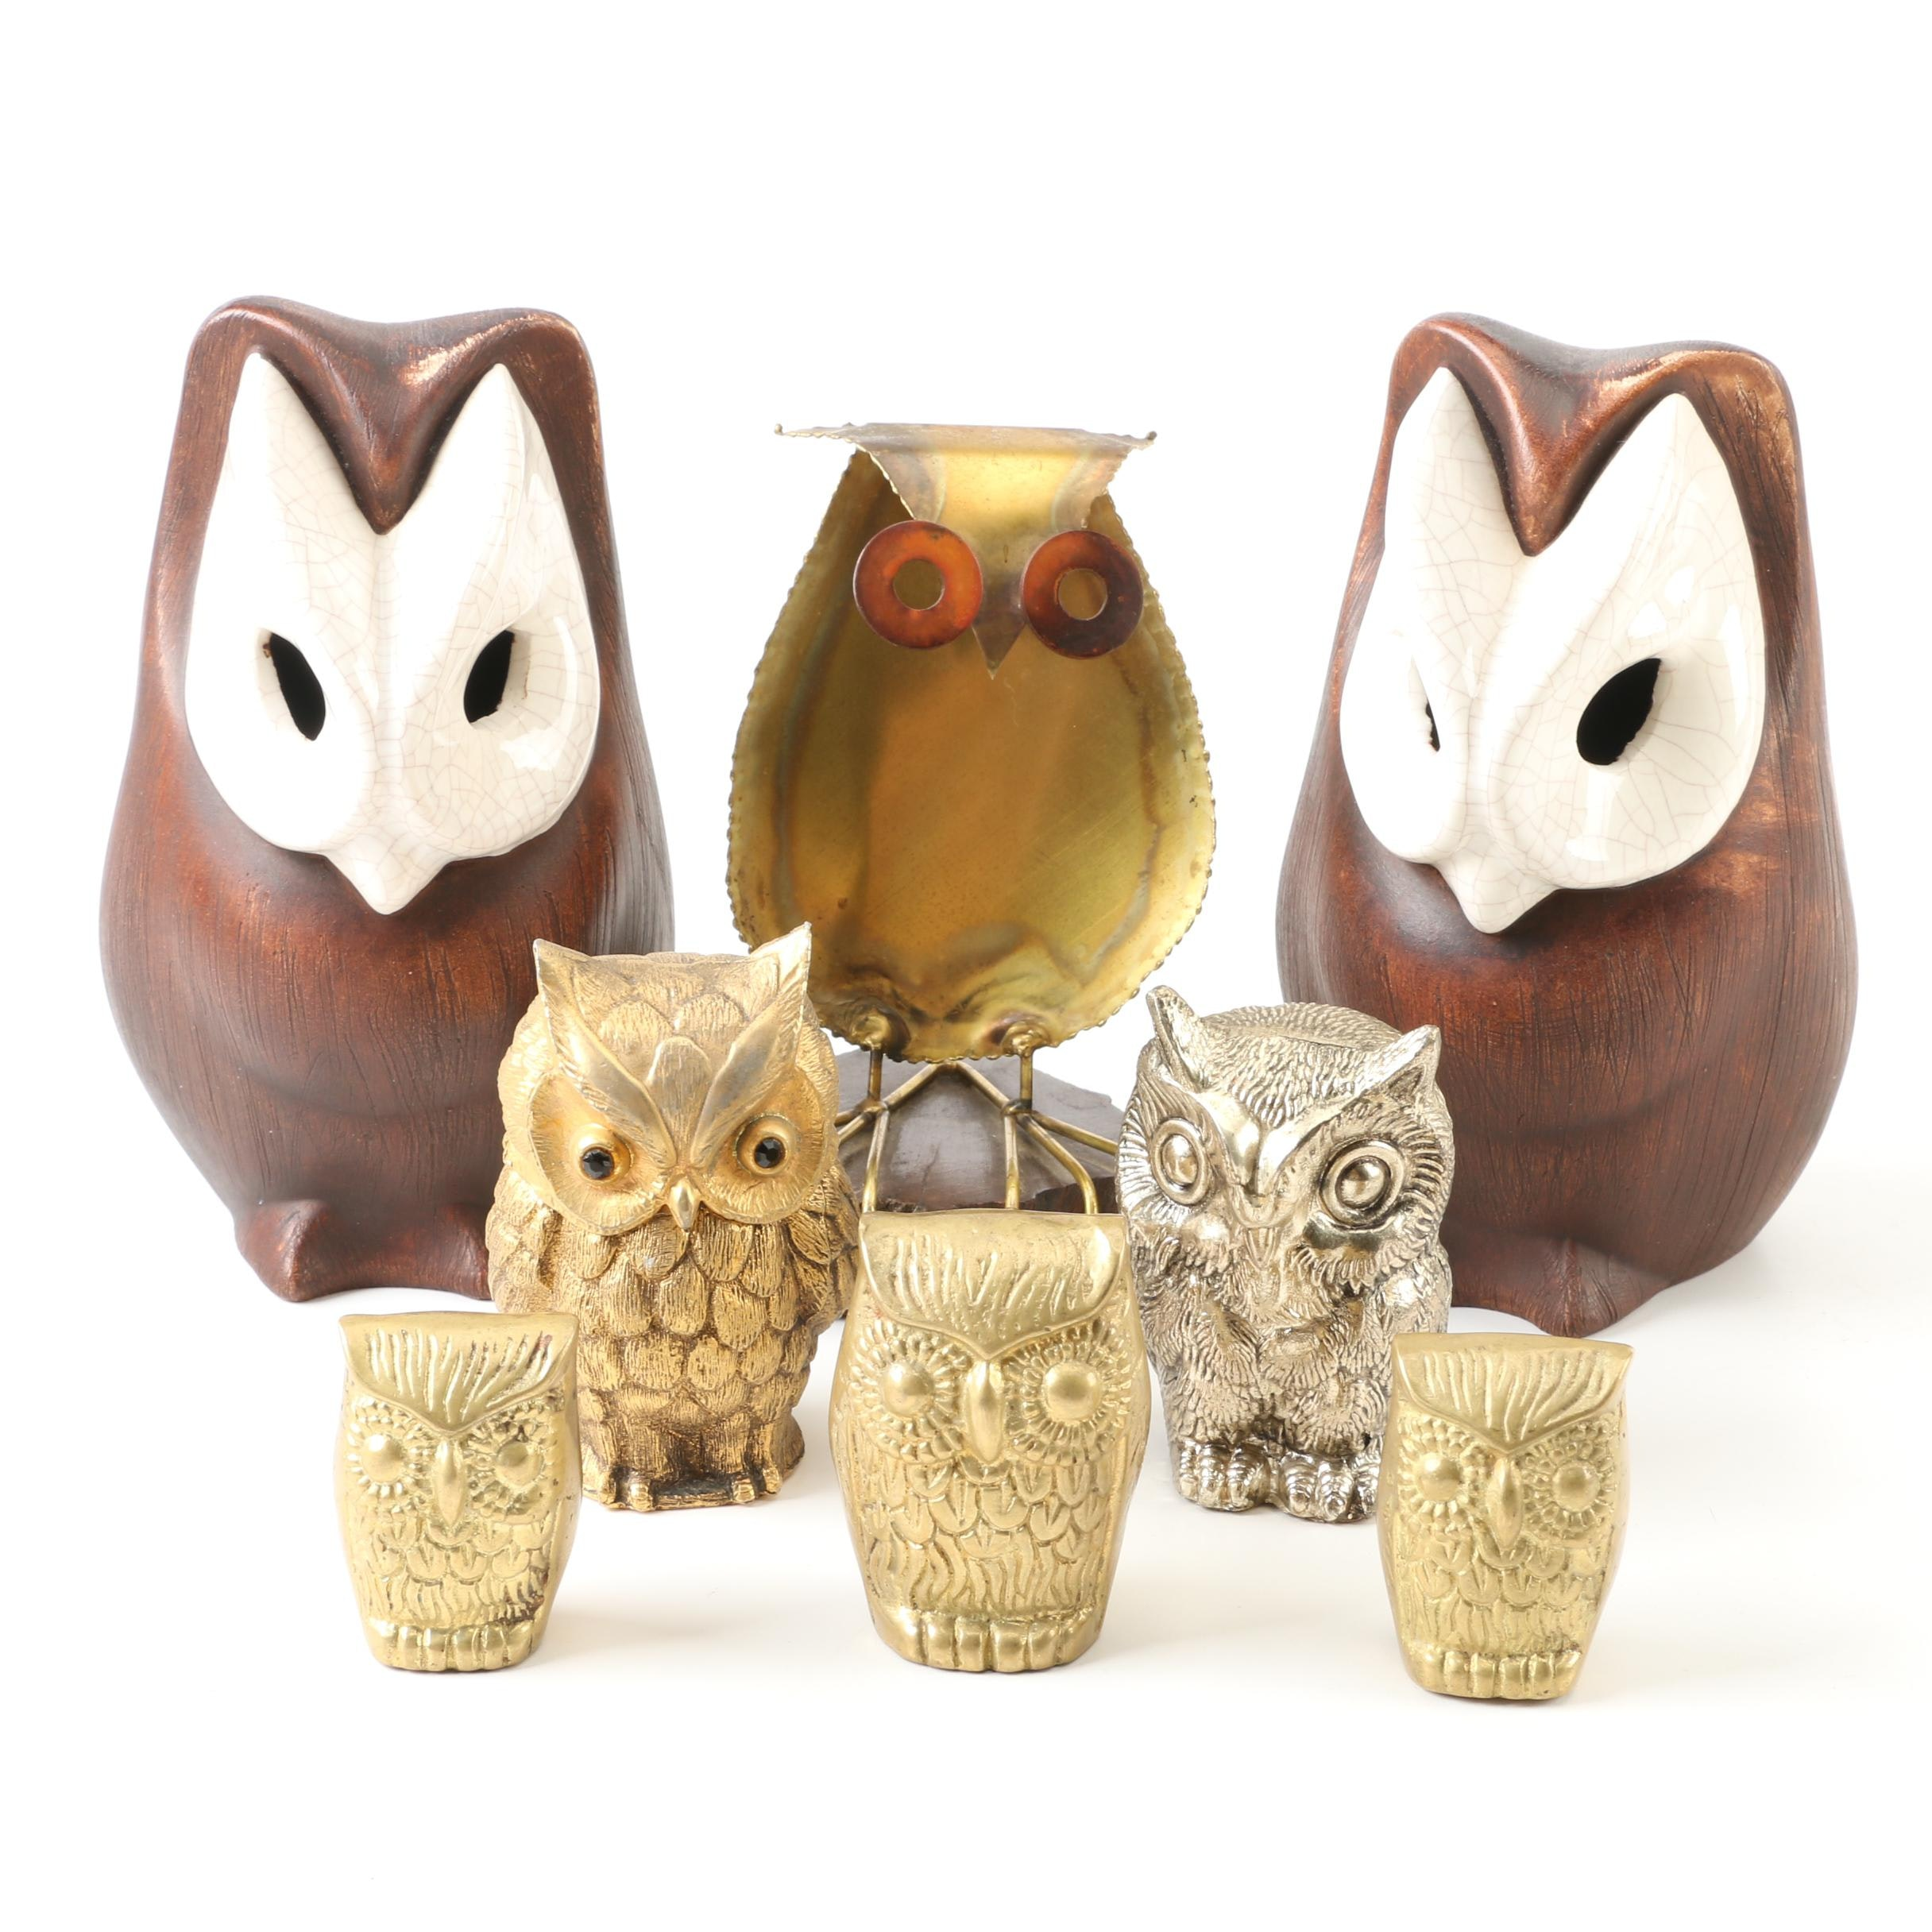 Vintage Engraved Metal Owl Figurines and Table Lighter